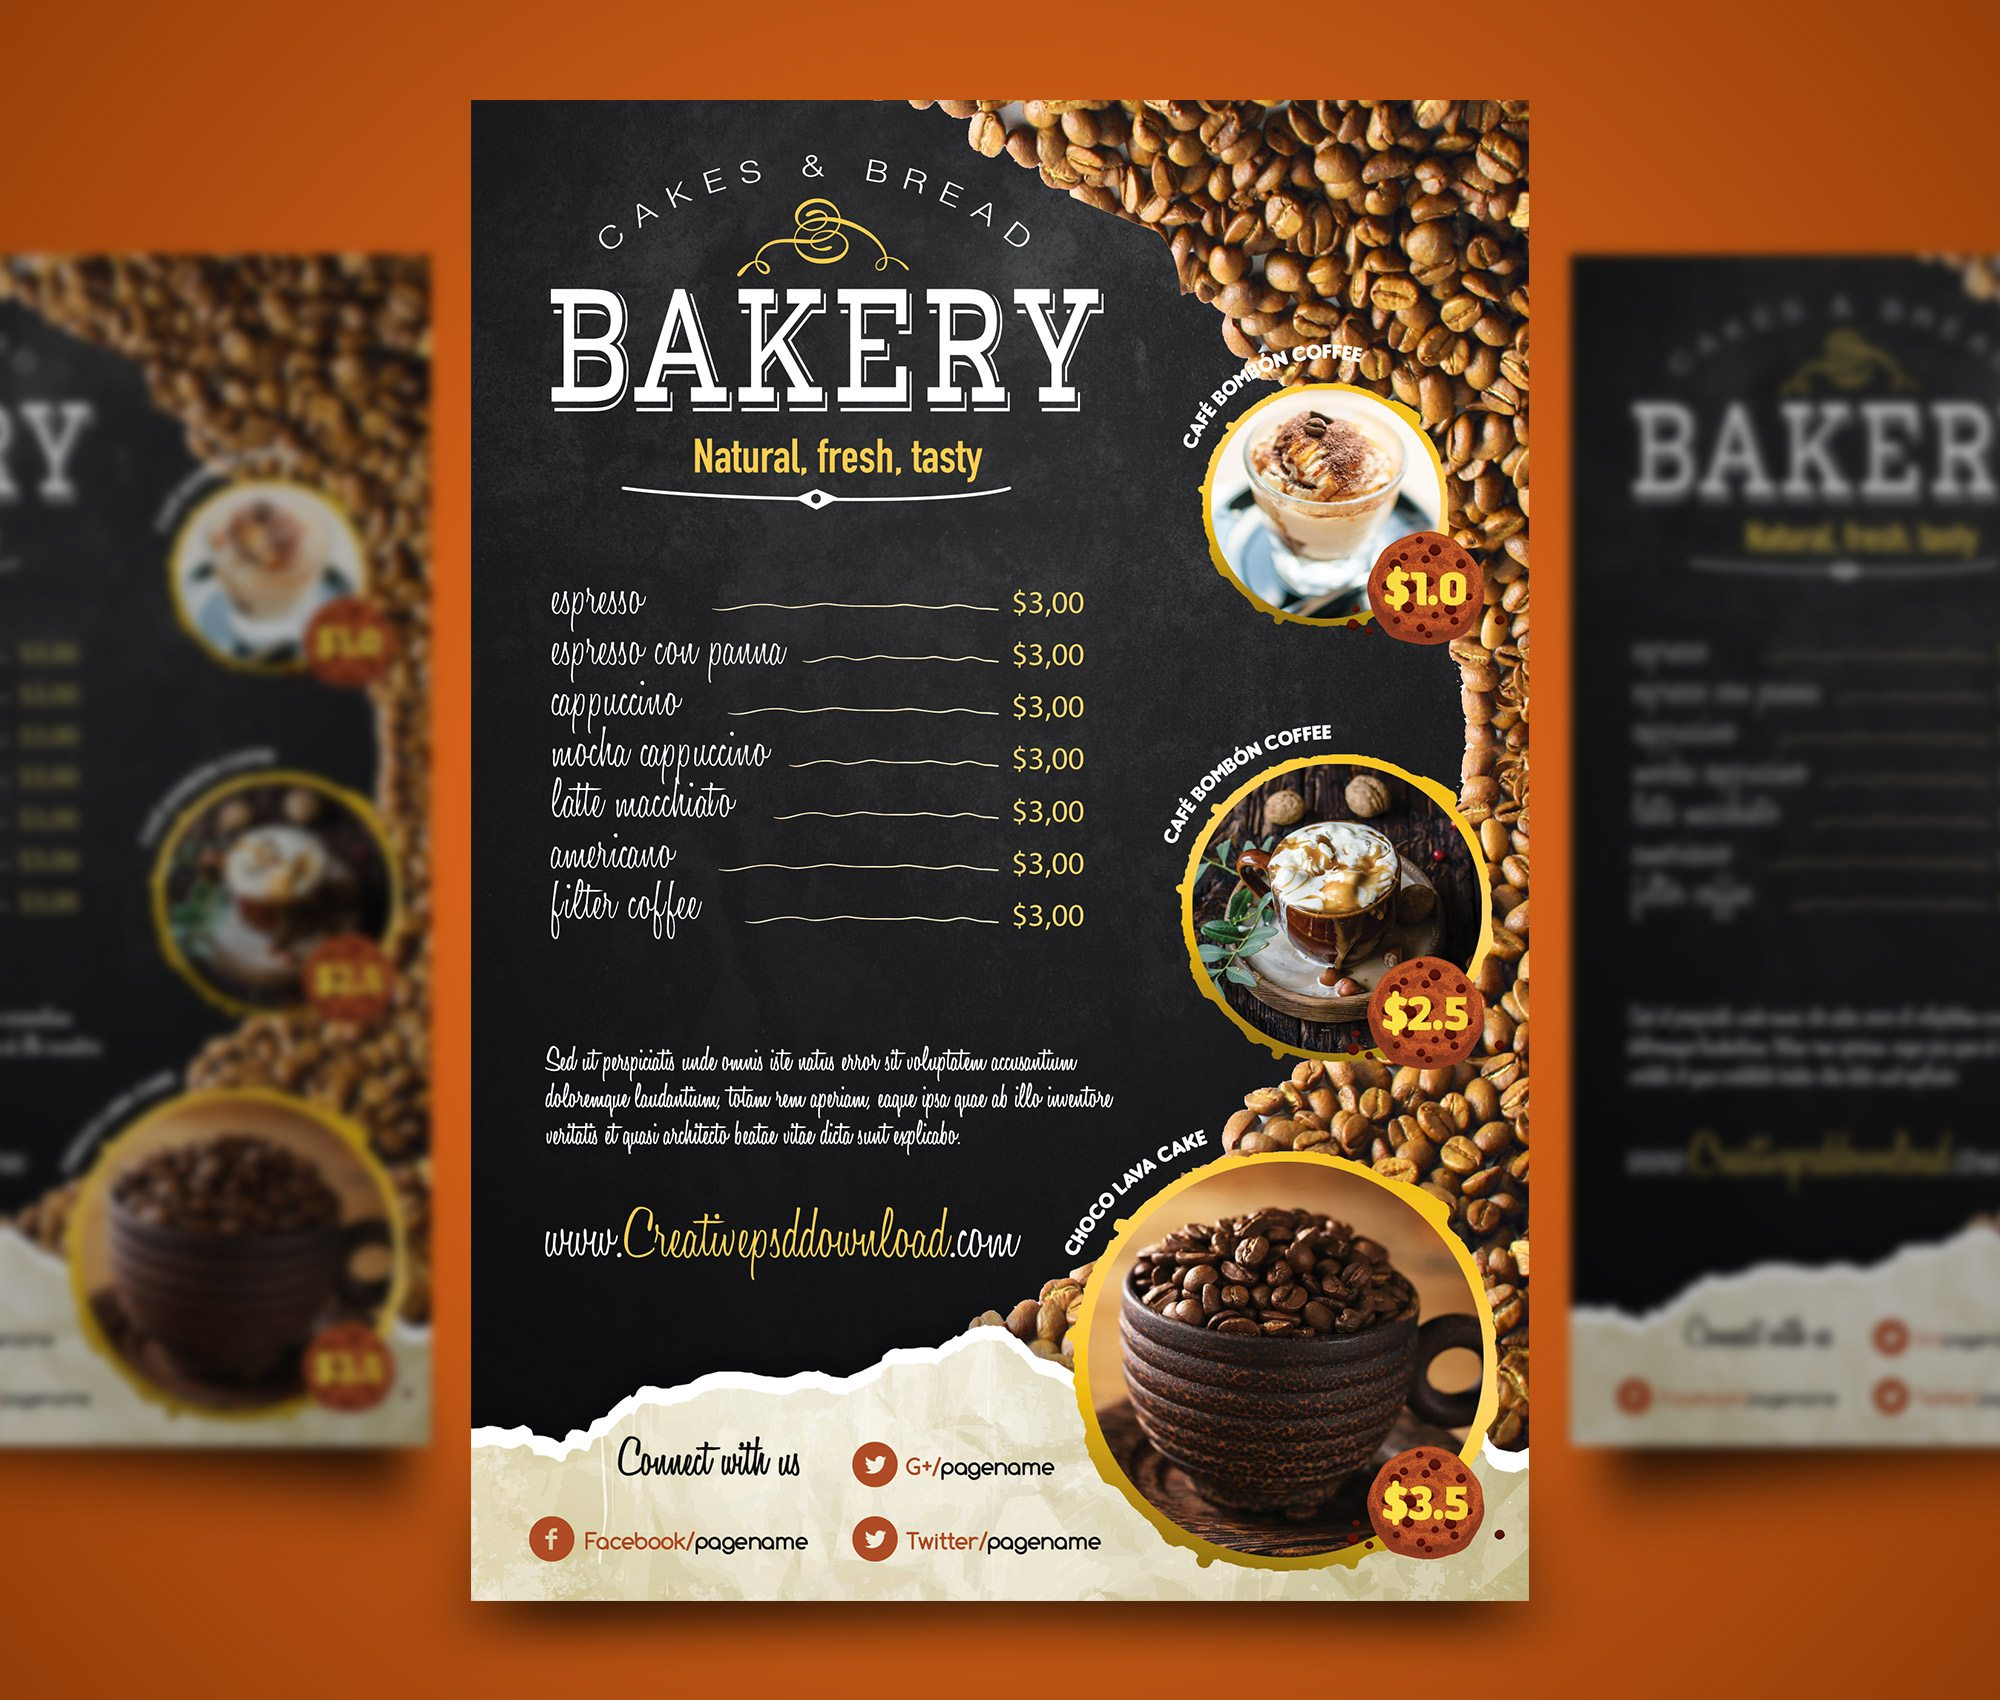 coffee shop flyer template free,coffee morning flyer template free,free coffee flyer psd,cafe flyers examples,editable coffee morning poster,coffee shop flyer design,coffee flyer design,coffee shop poster design,